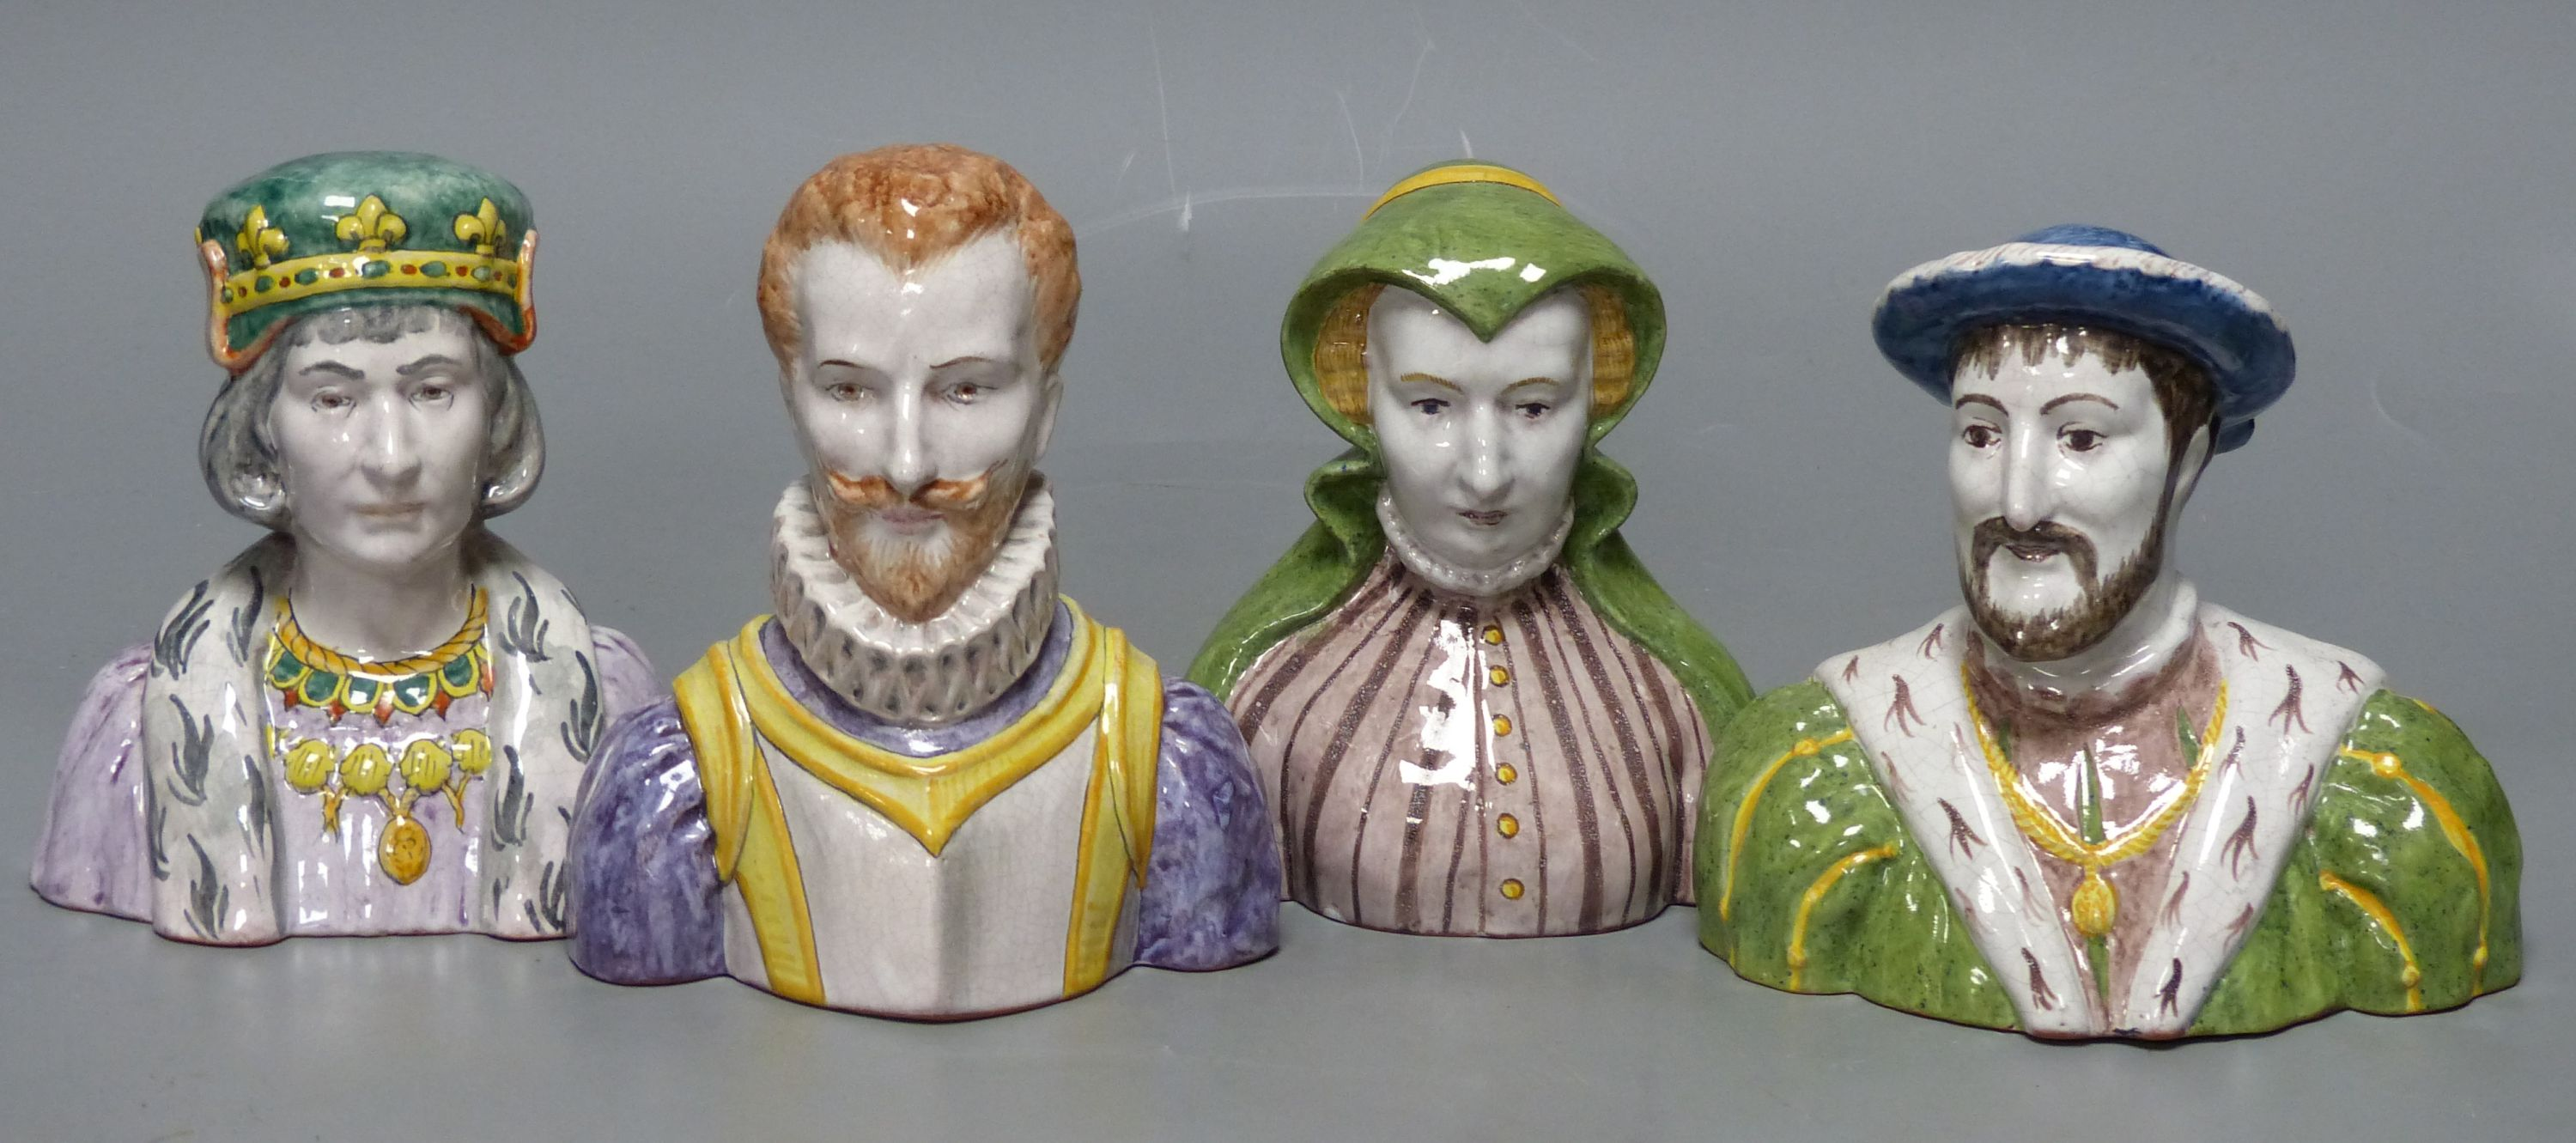 A French tin-glazed faience small bust of Catherine de Medici, another of Francois I and two